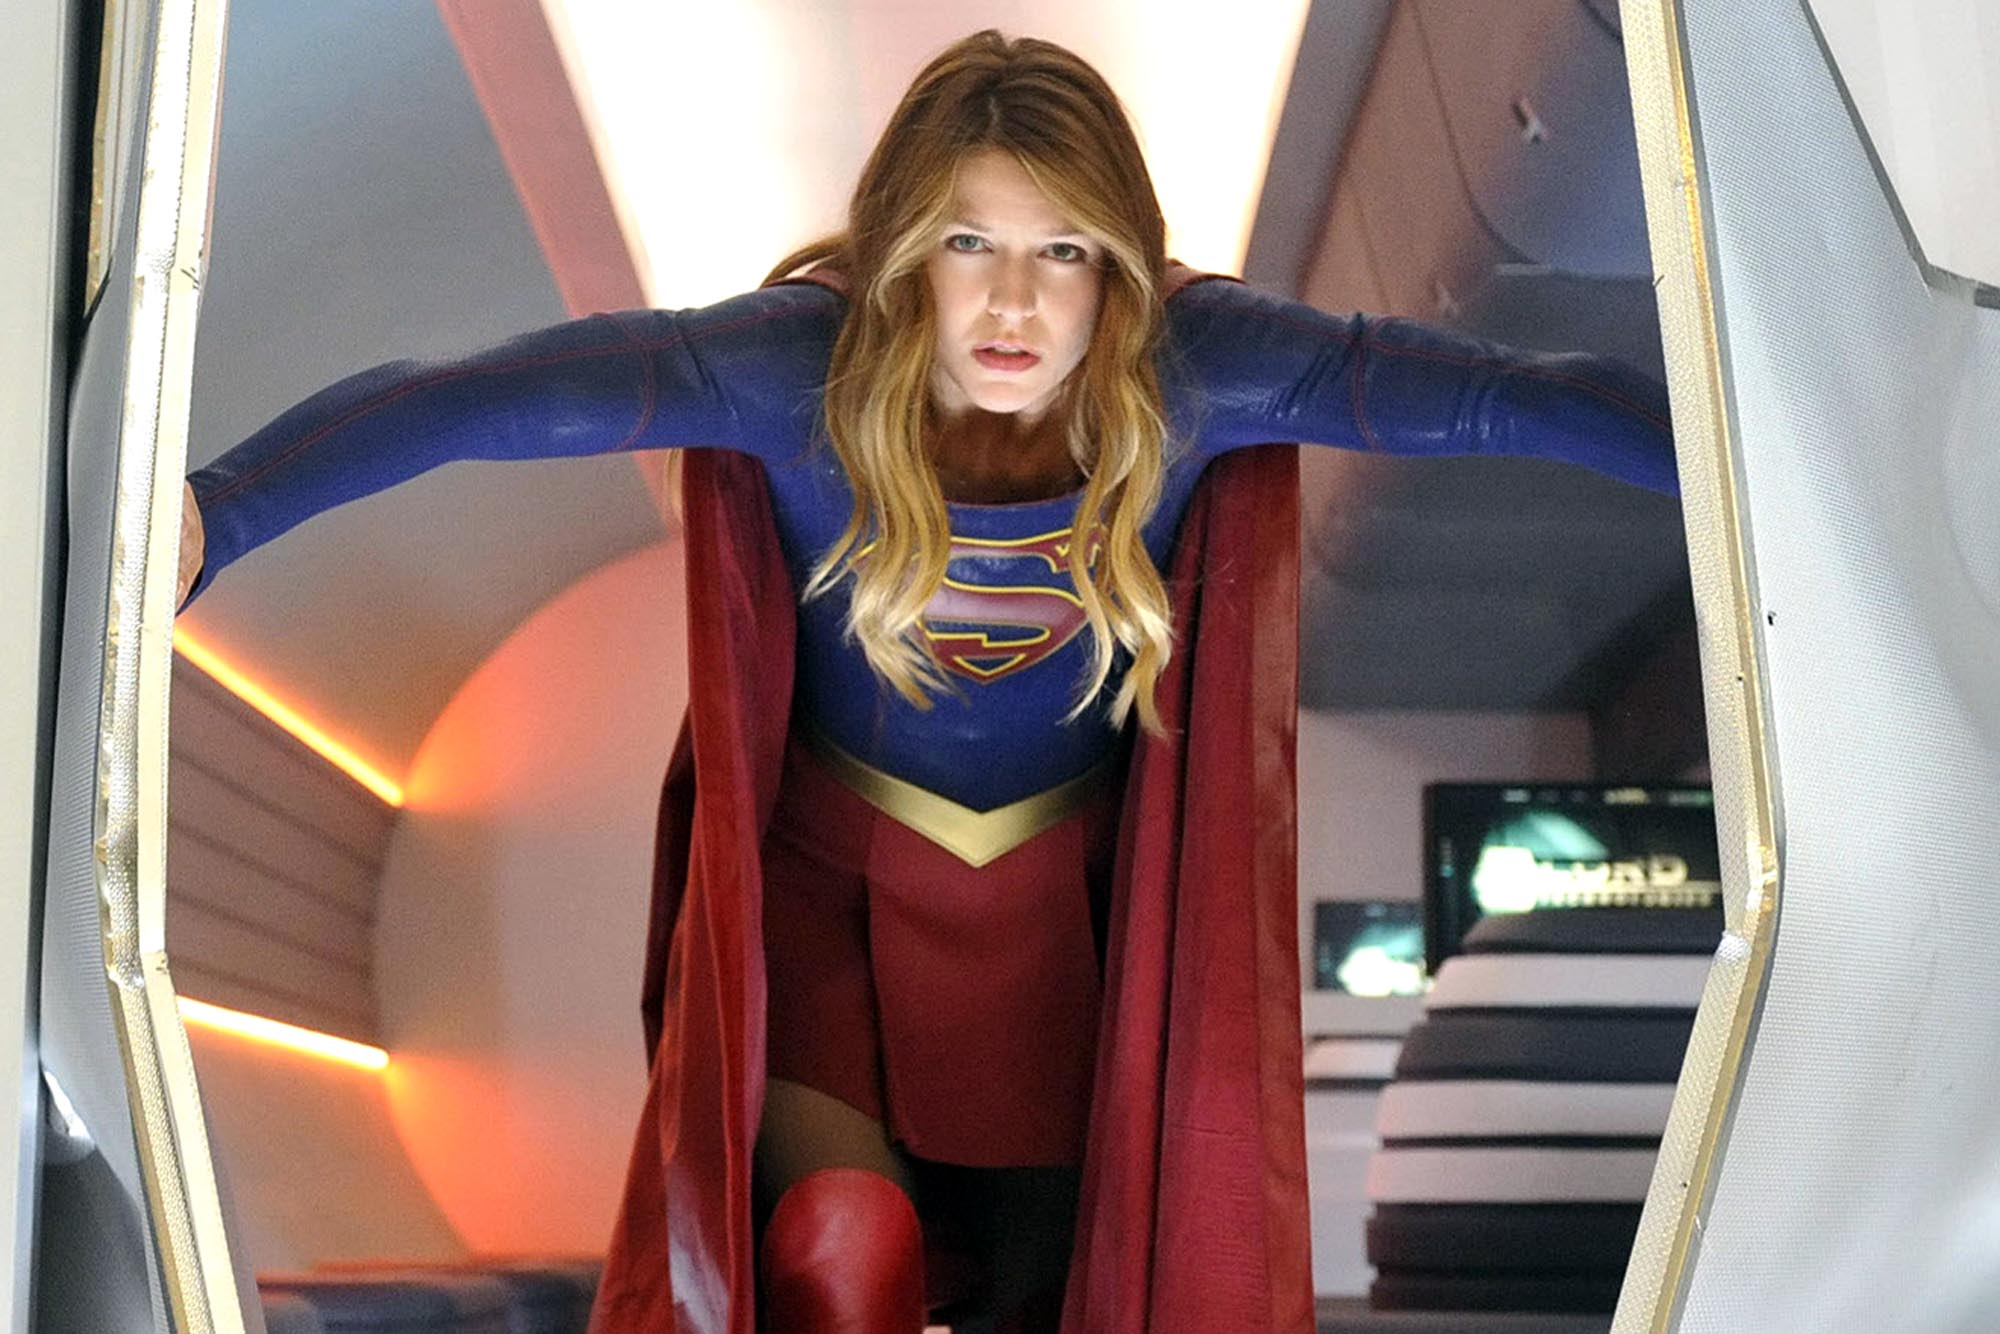 supergirl in an airplane.jpg